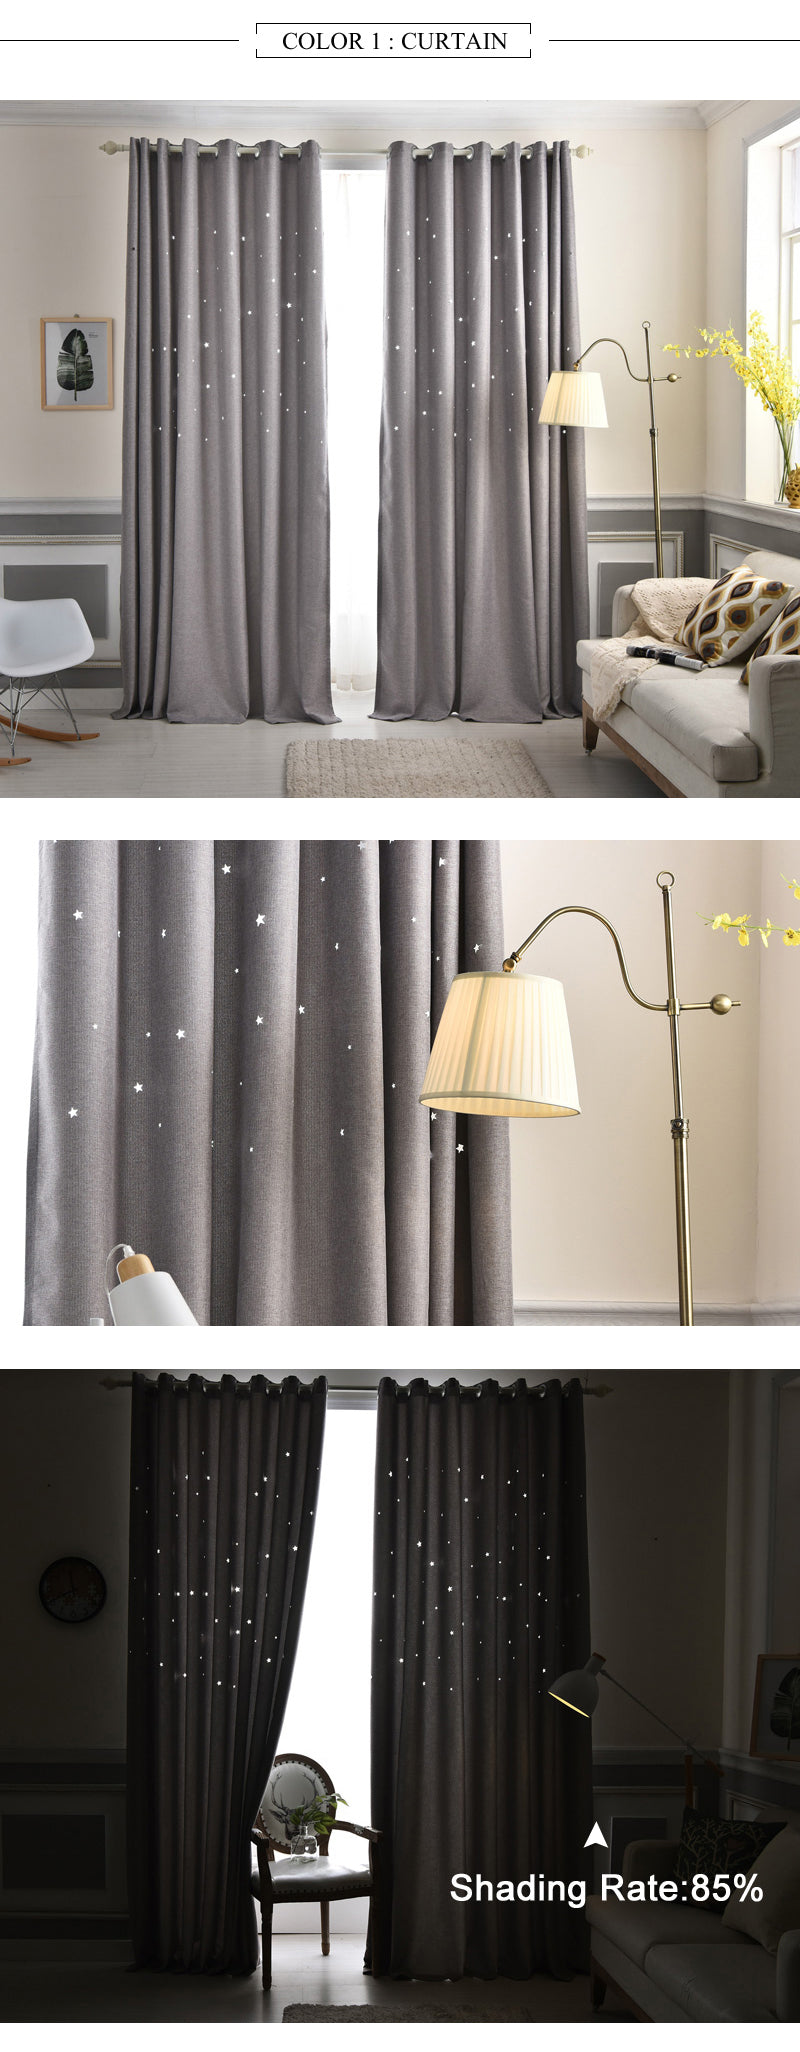 window bedroom list and styles panel curtain drape treatments of popular